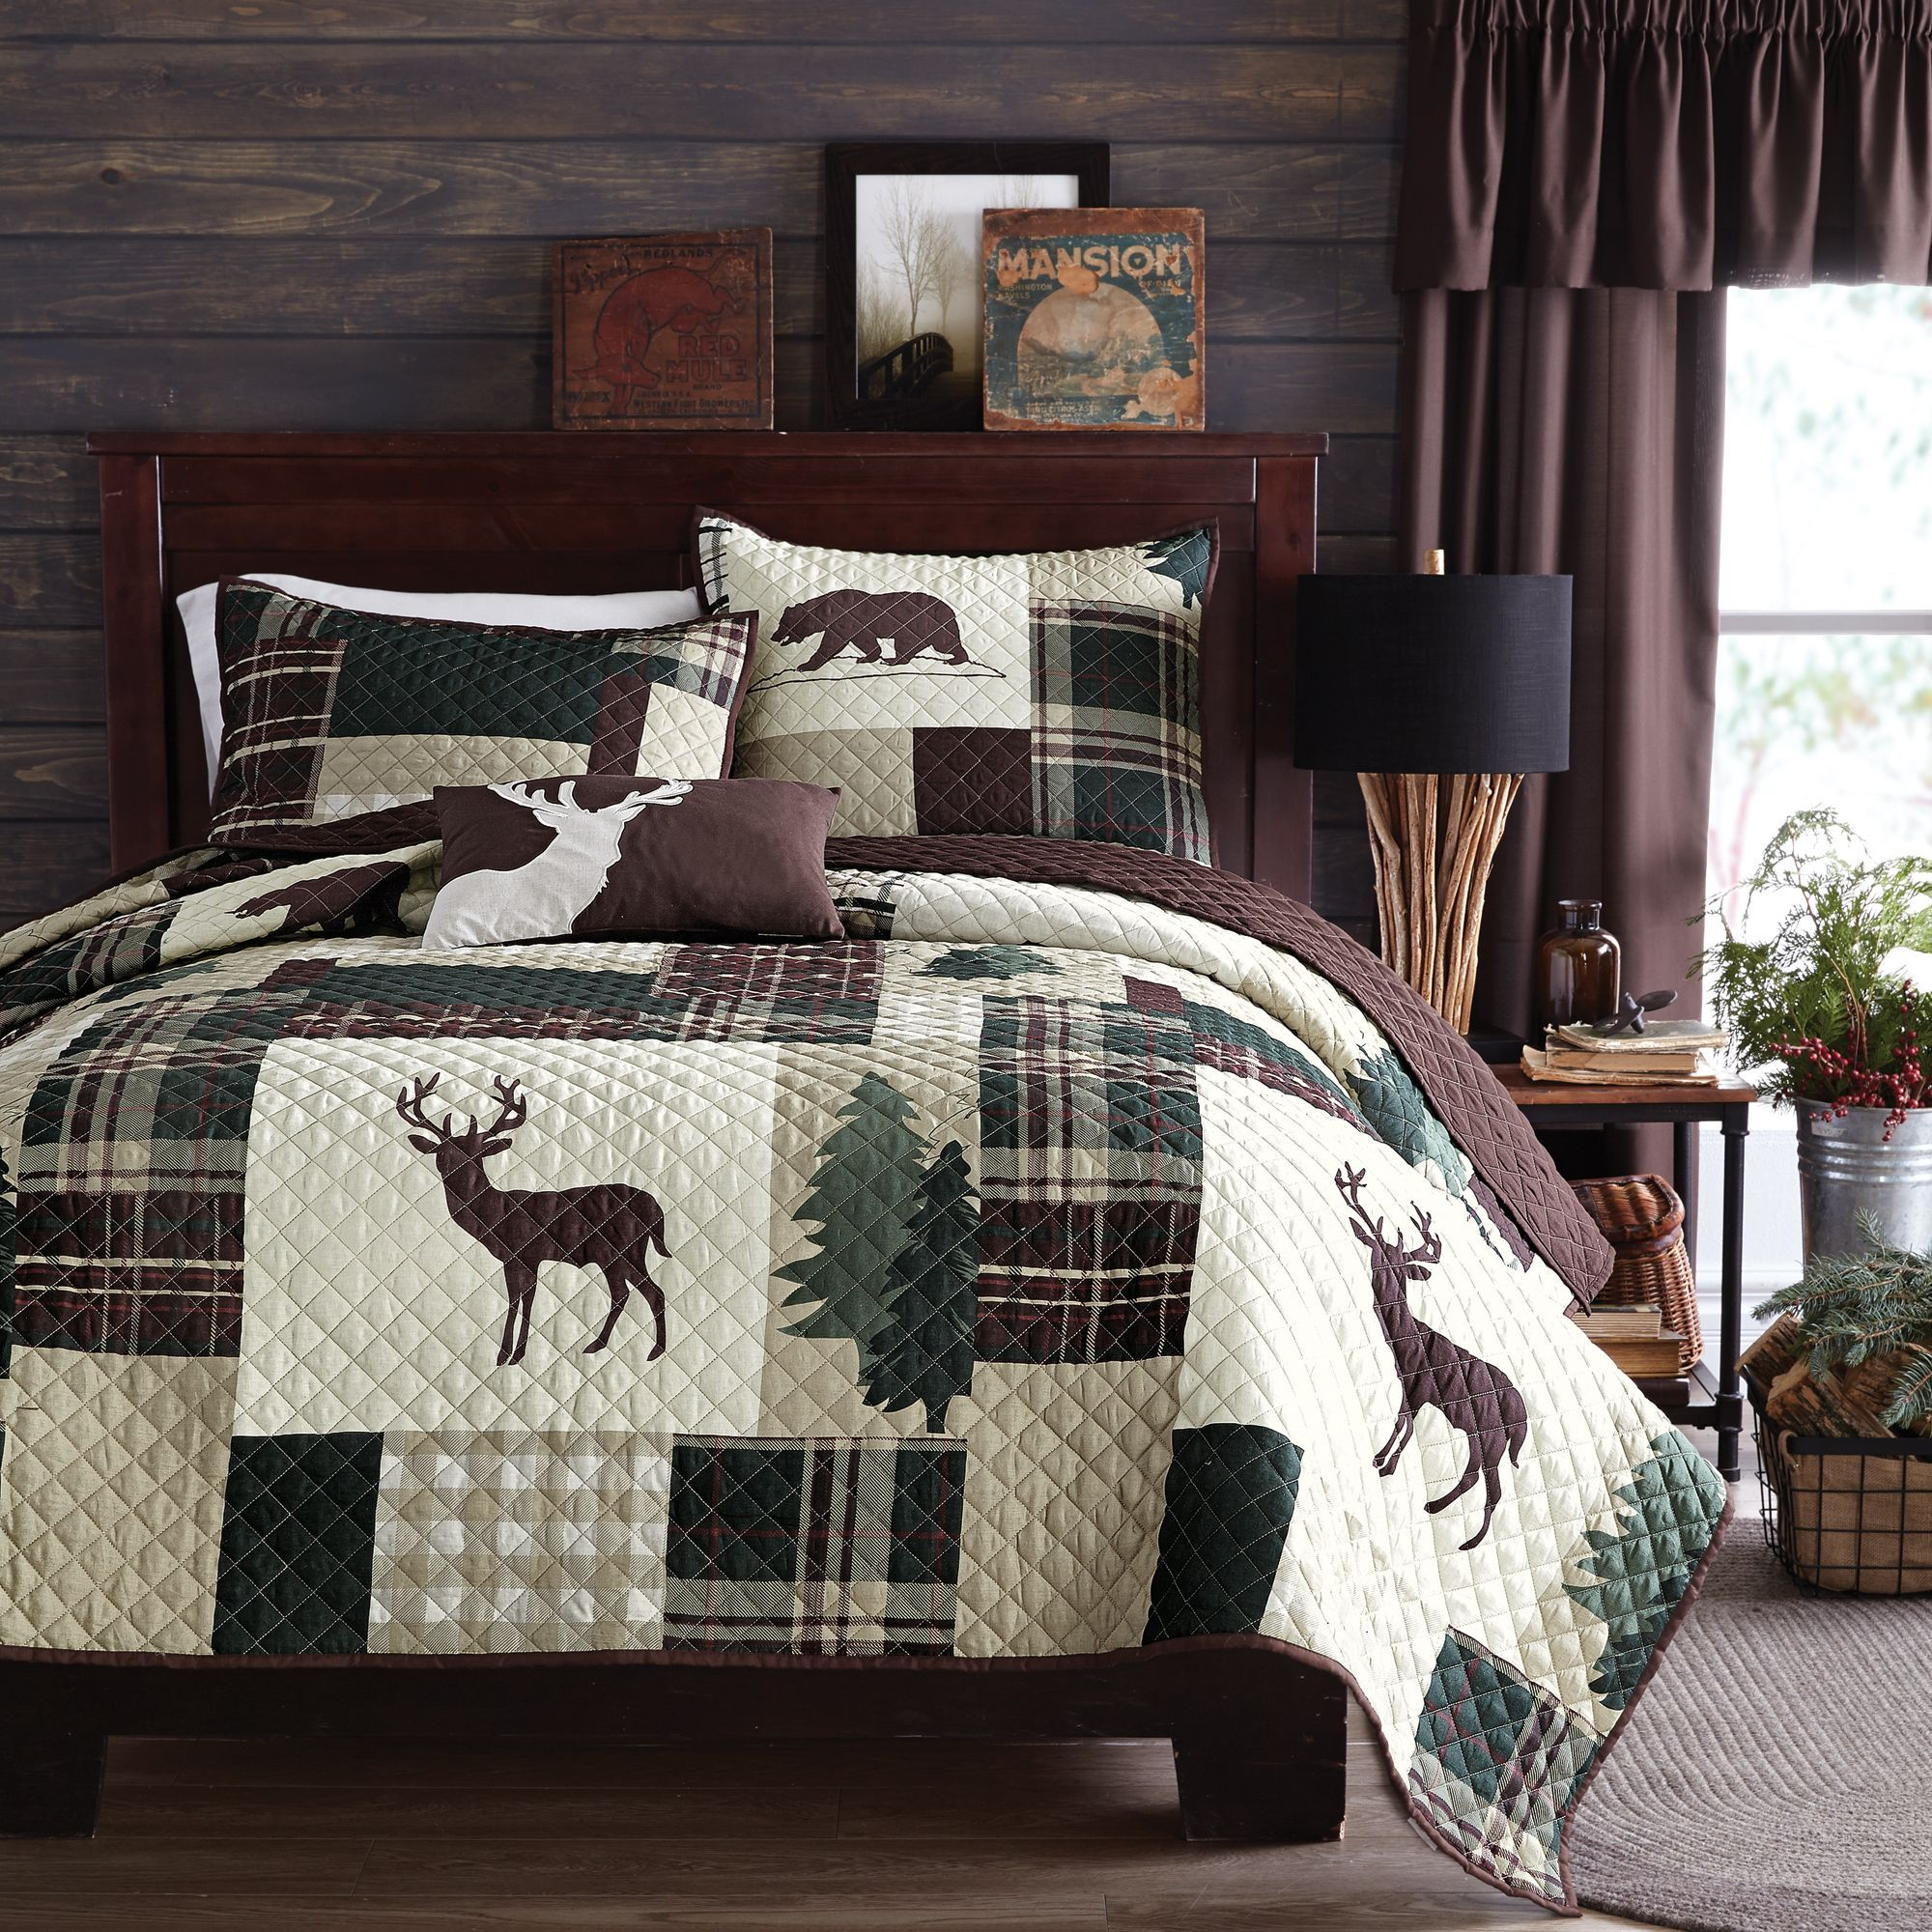 Lodge Style Bedroom Furniture Wholehomear Md Home Lodge Collection My Husband Would Love